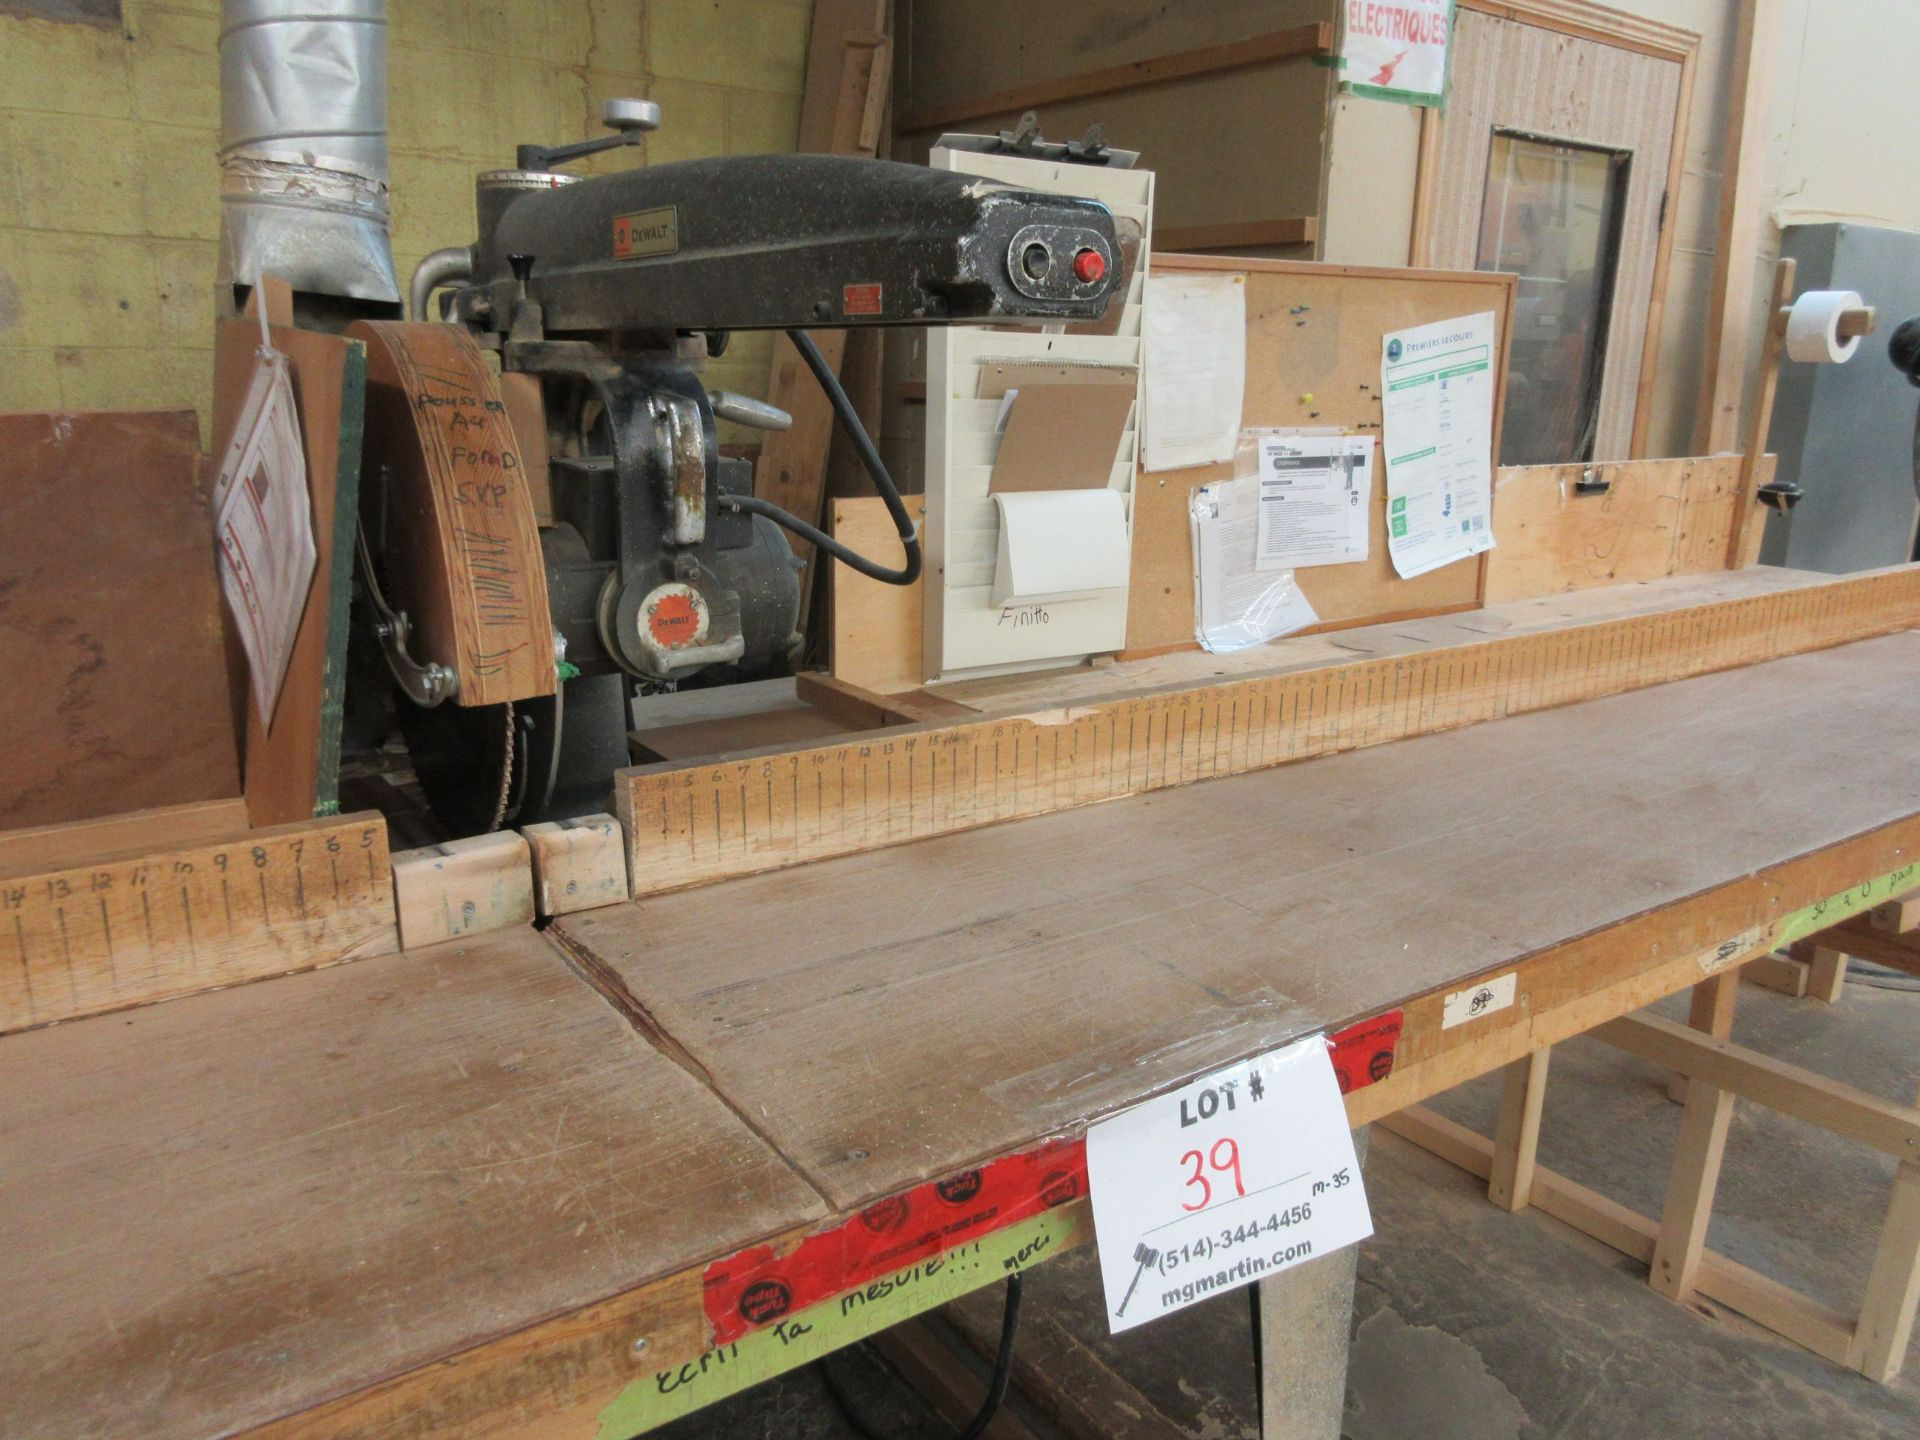 """DEWALT radial saw 16"""" Mod: 3526-02, 600 volts (SUBJECT TO BANK APPROVAL) - Image 2 of 3"""